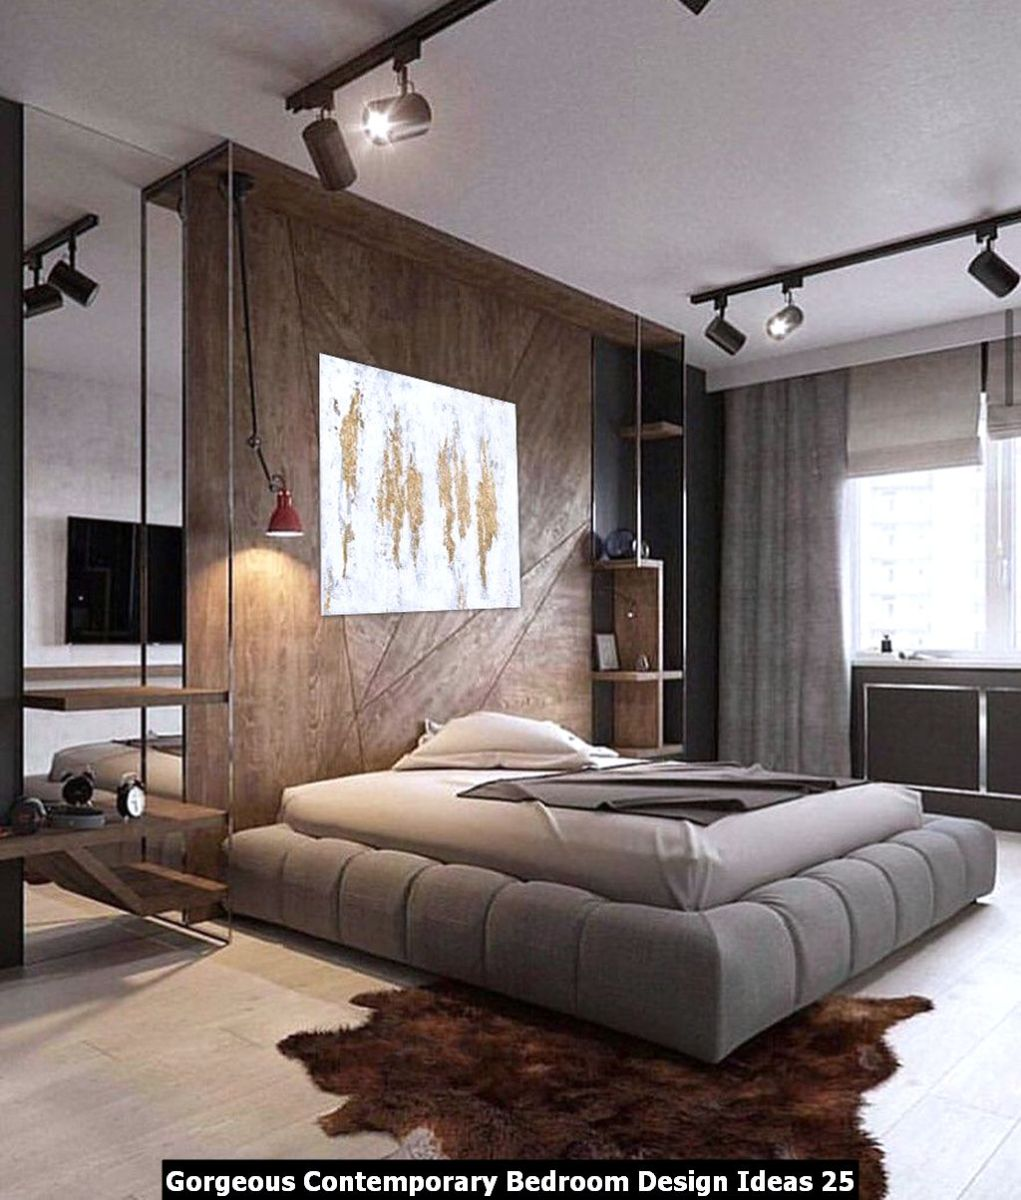 Gorgeous Contemporary Bedroom Design Ideas 25